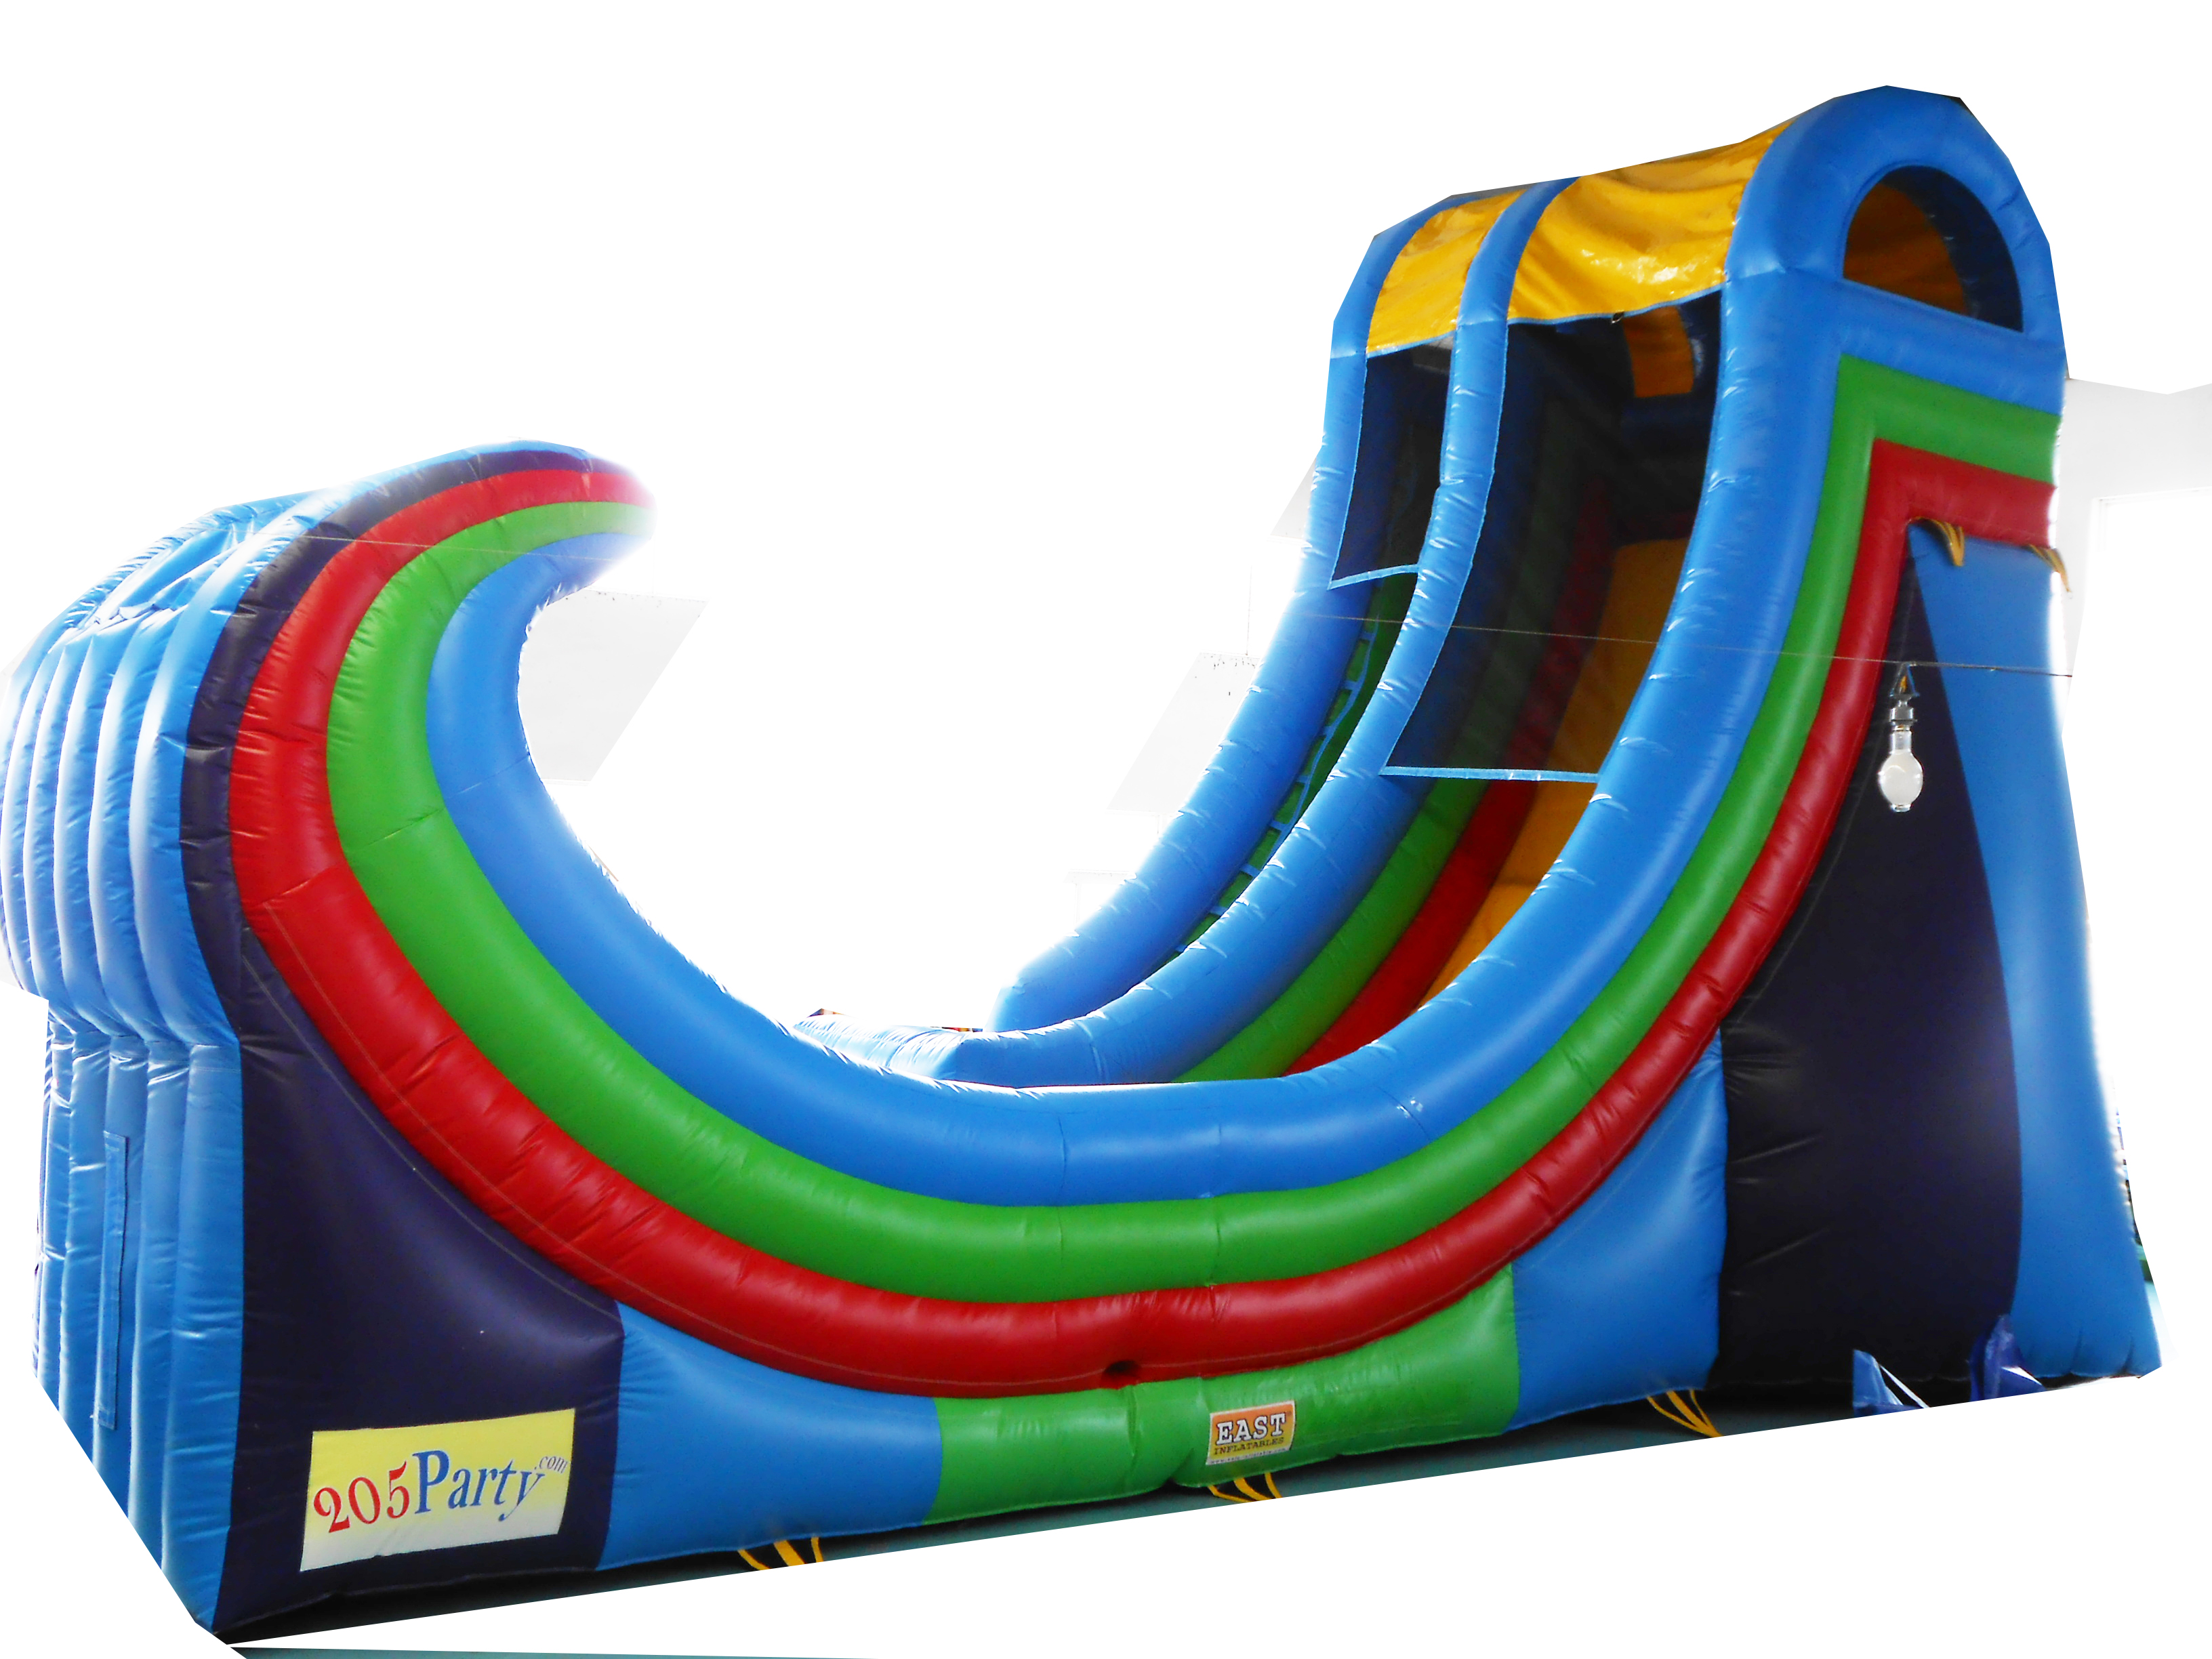 12Turbo Thriller Wet Dry Water slide